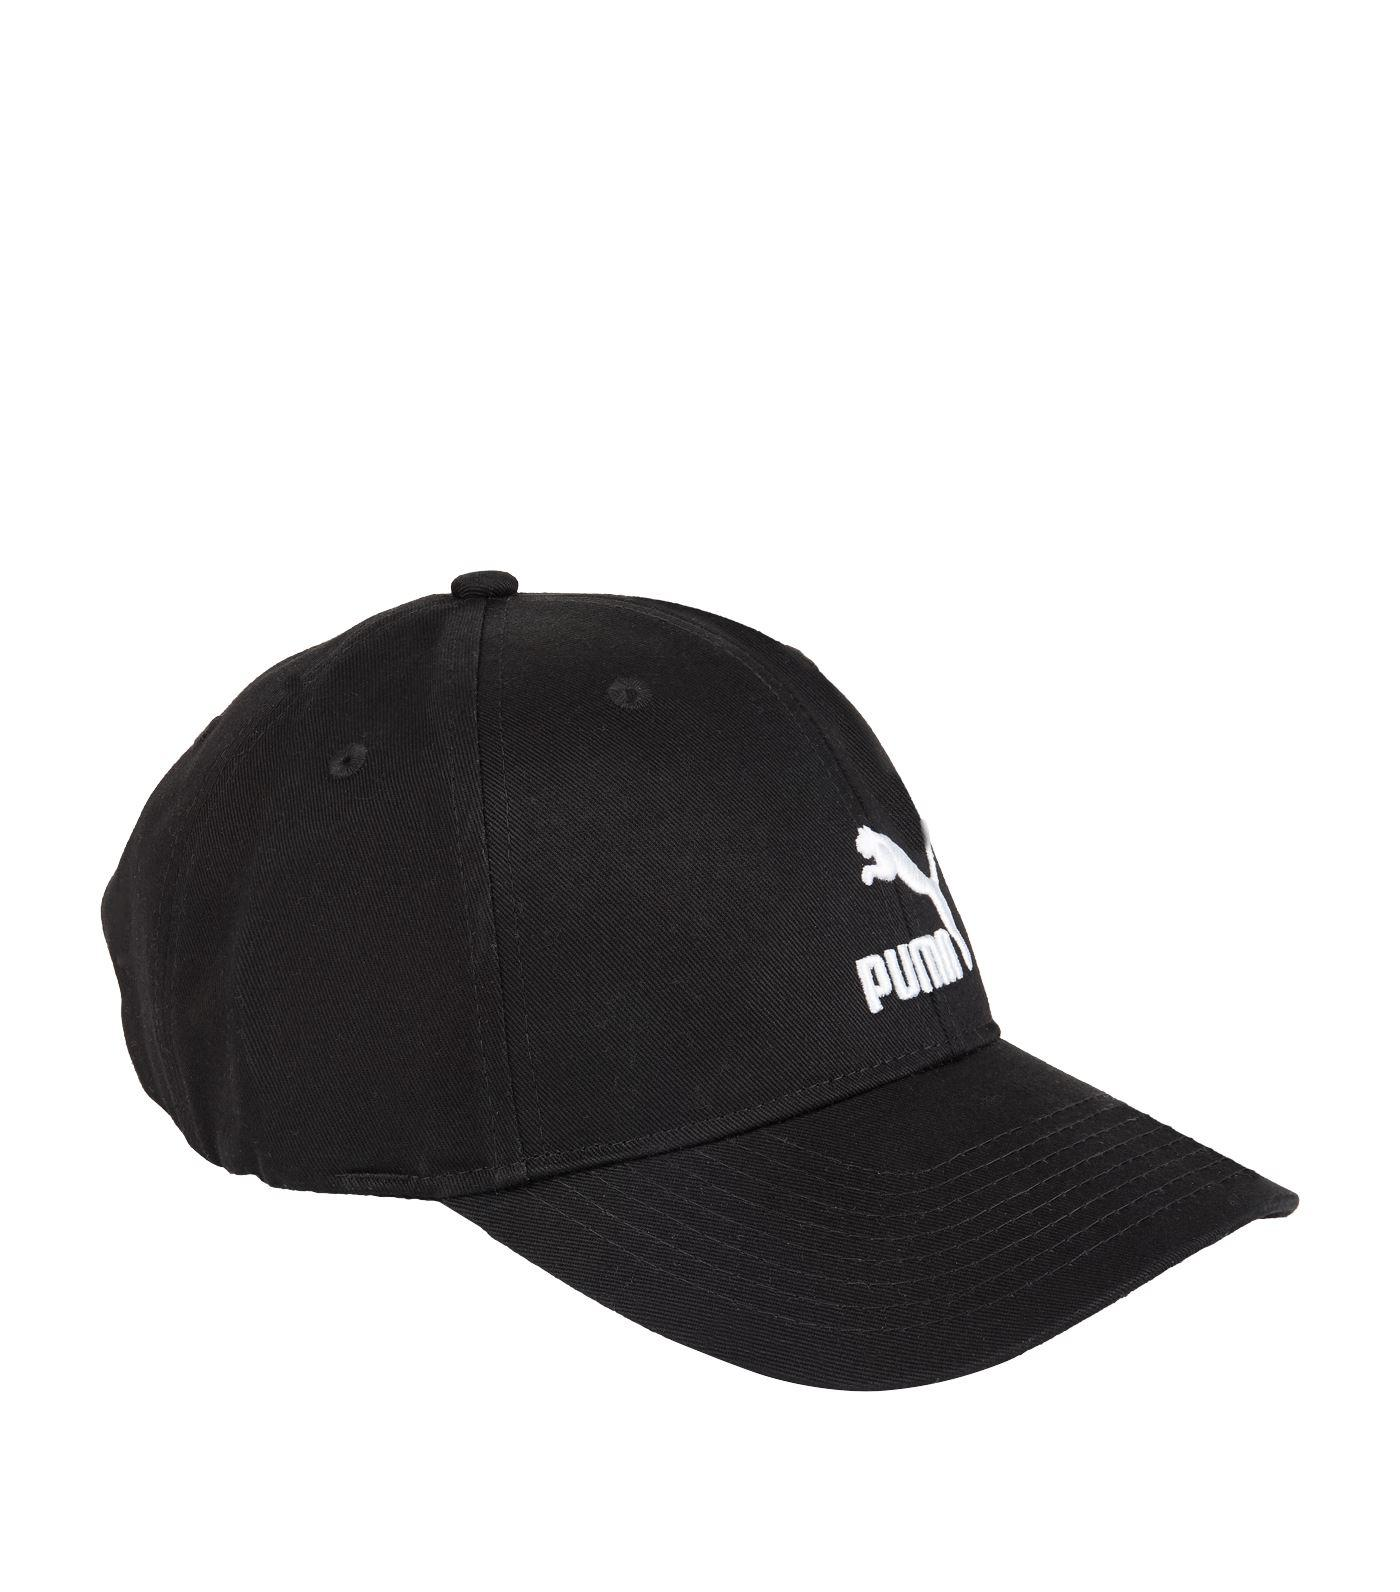 167424a1379c2 Lyst - Puma Archive Logo Cap in Black for Men